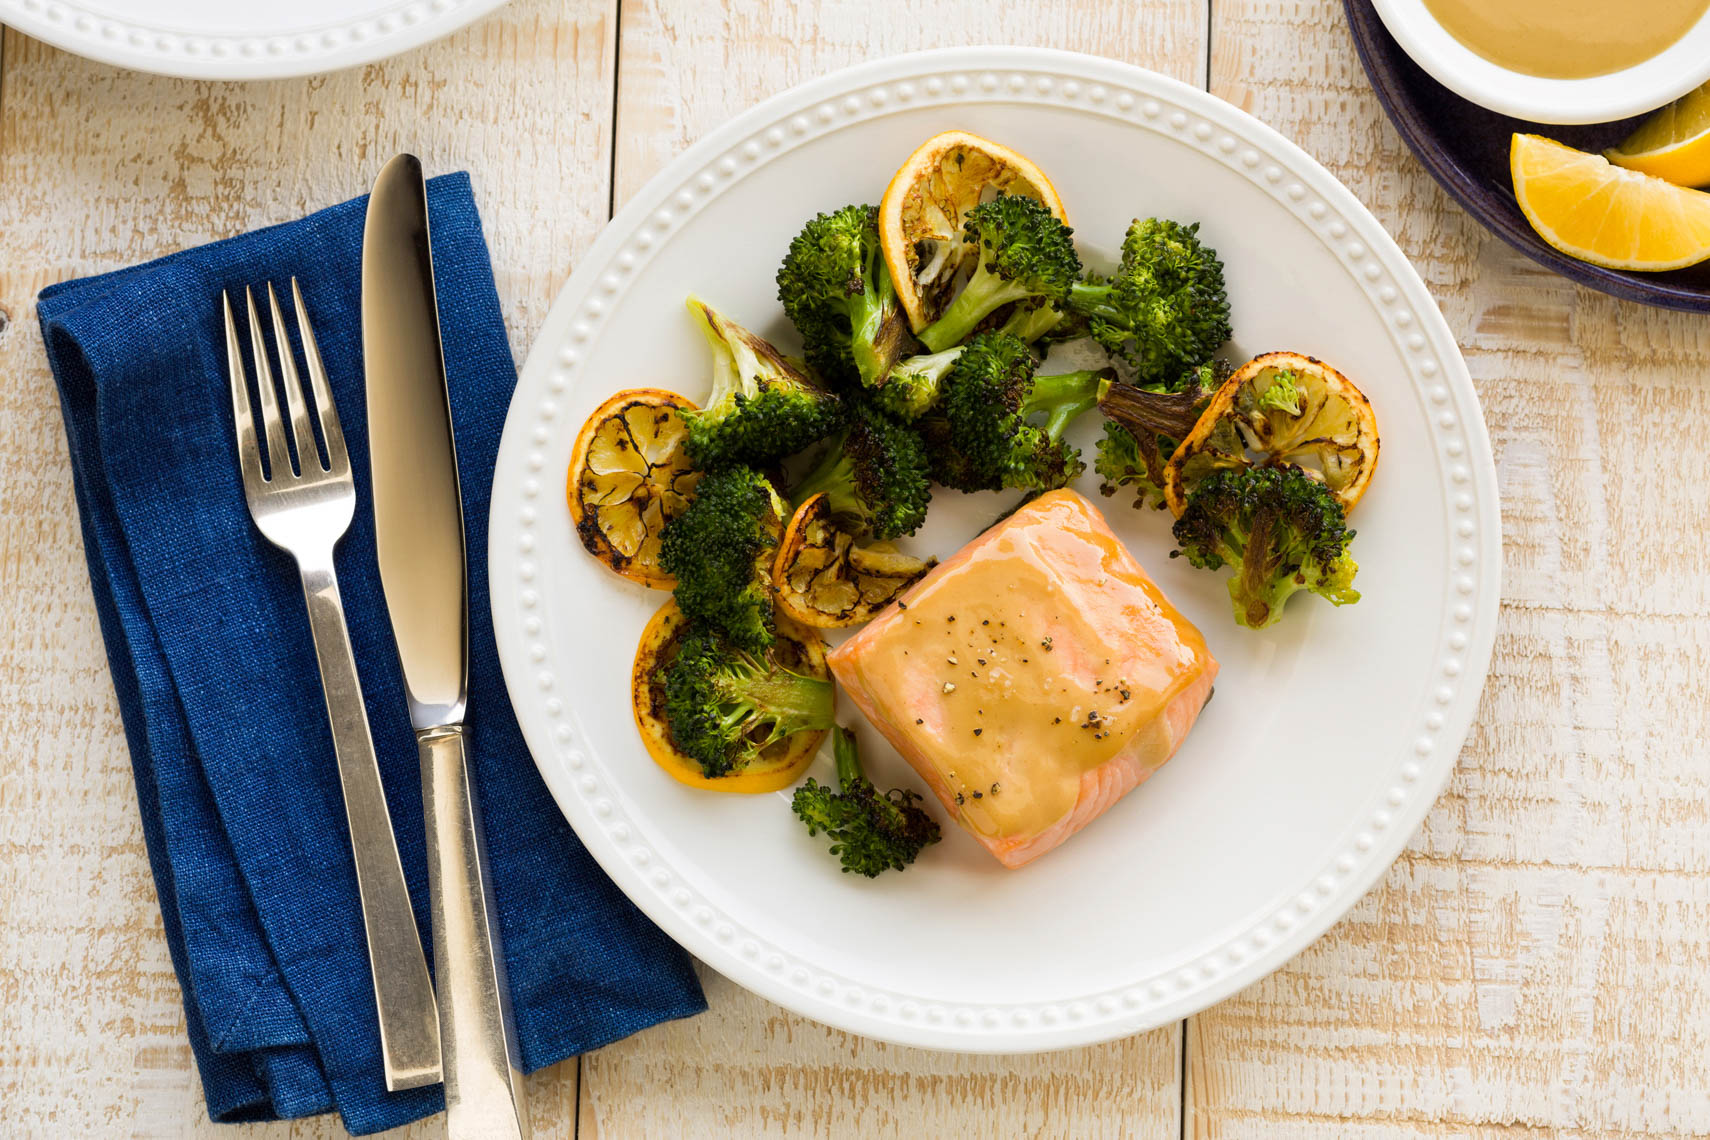 Honey_Mustard_Glazed_Salmon_Lemon_Roasted_Broc_lighter